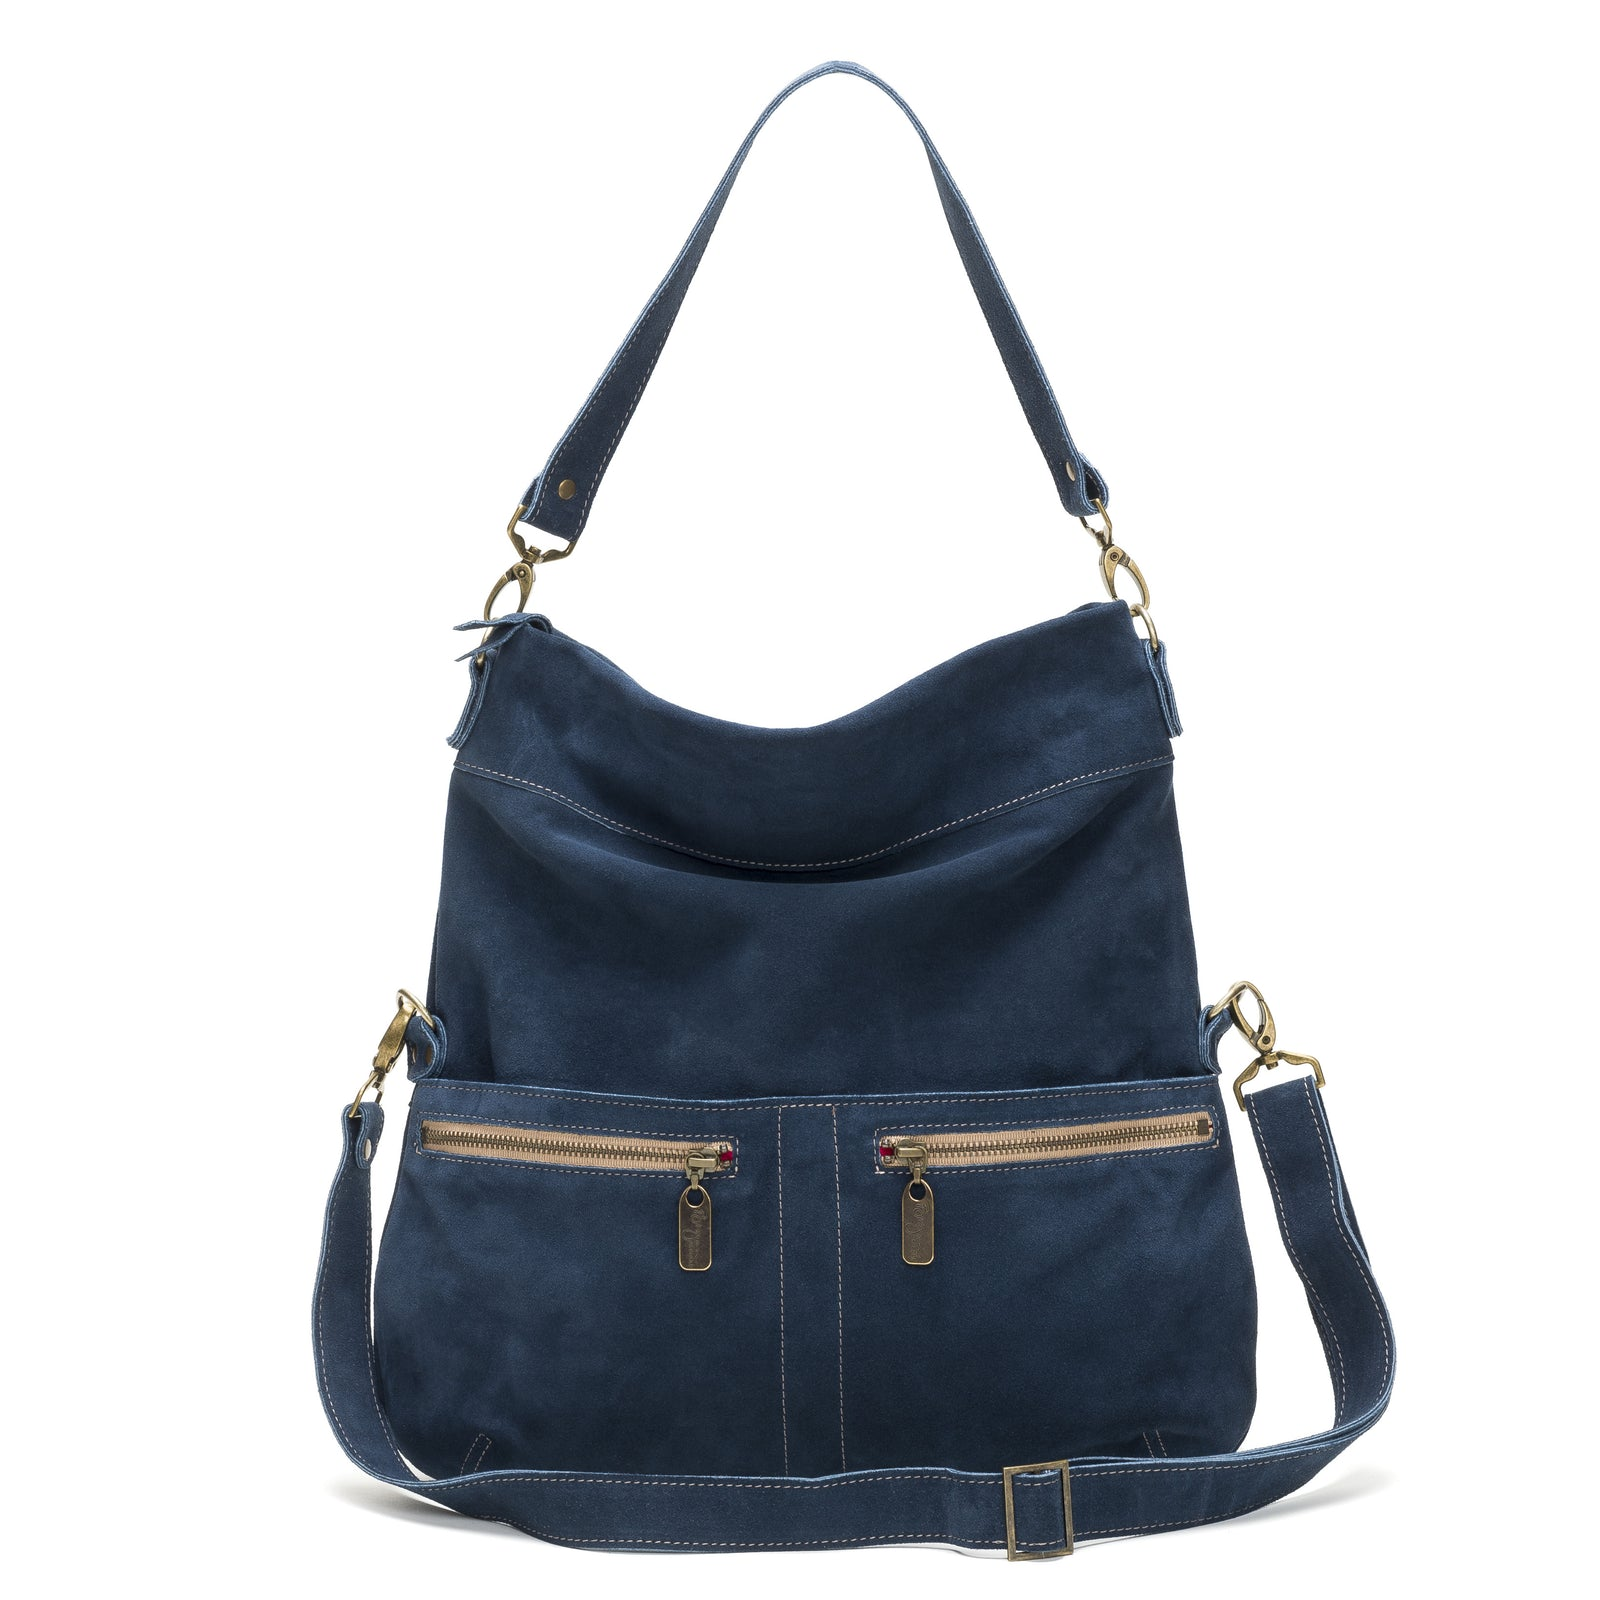 Lauren Crossbody - Pacific - Brynn Capella, Large Crossbody